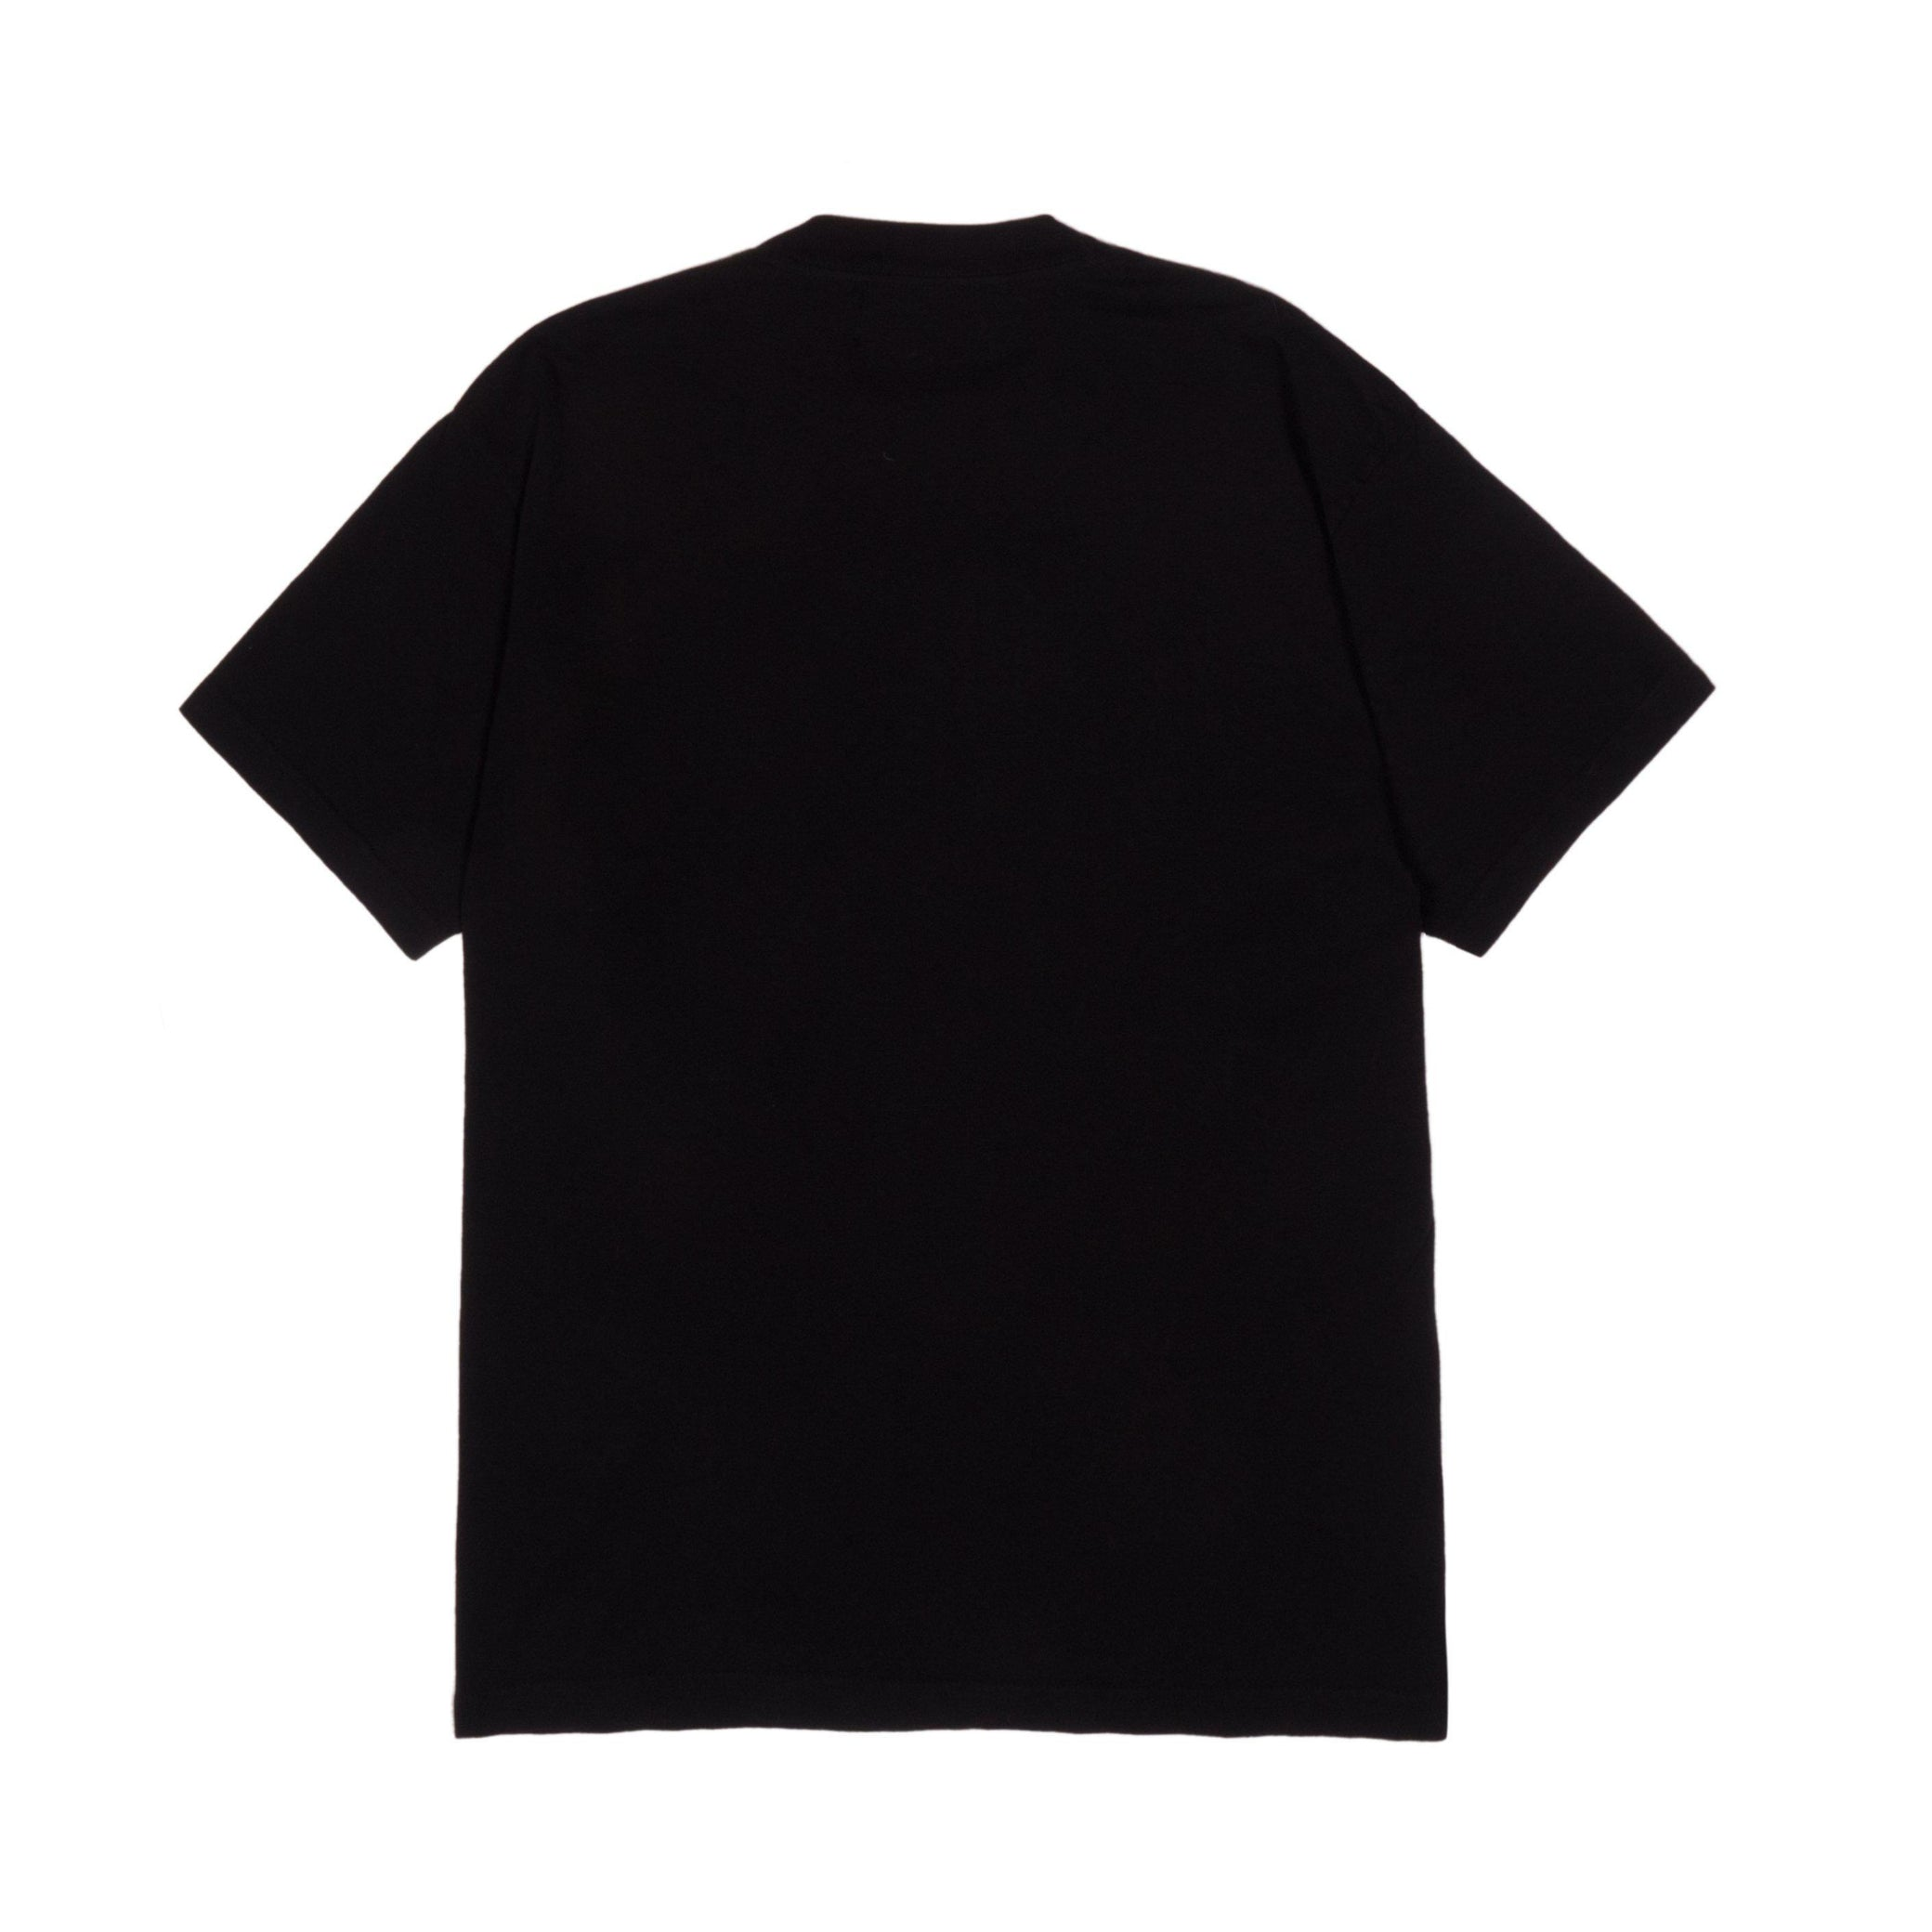 ONLY PATH TEE - BLACK-MILFDAD